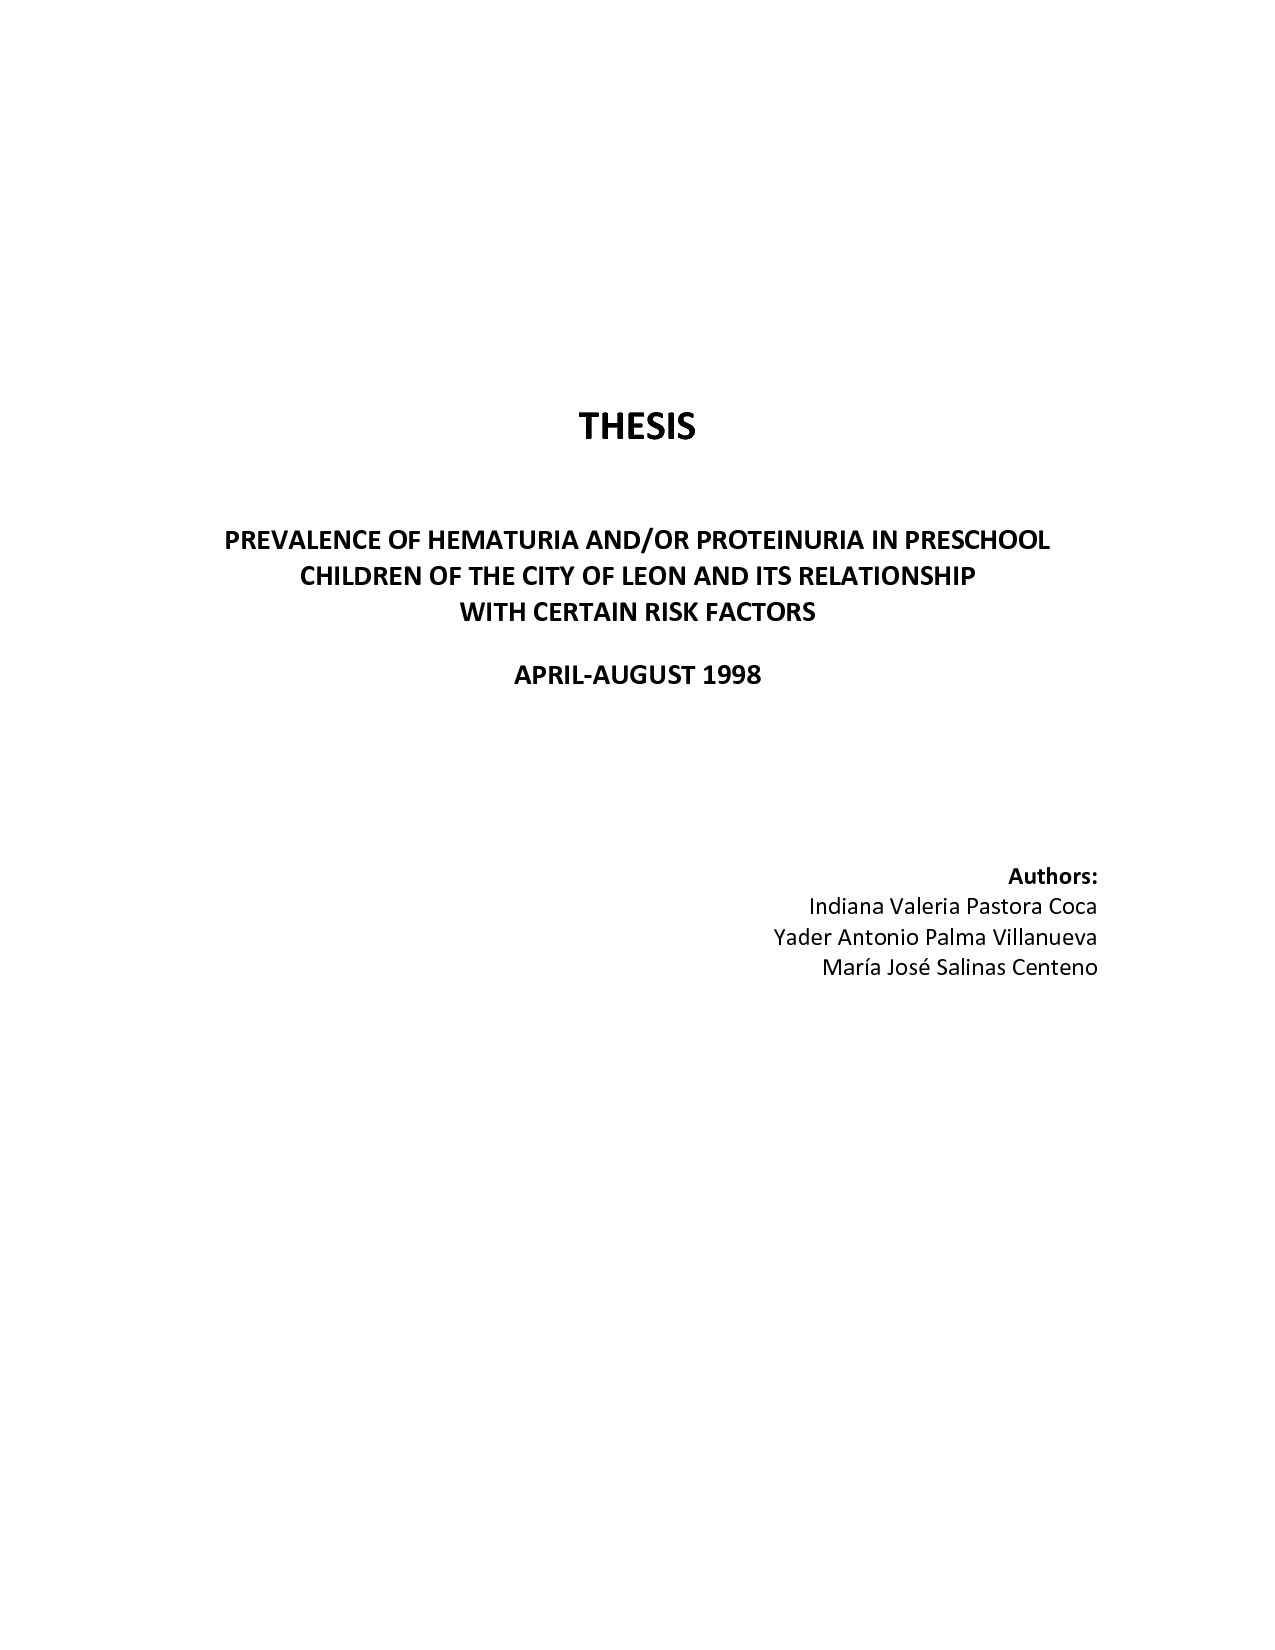 thesis dedication to parents Now i want to dedicate my thesis to him  dedication of my thesis to my late father up vote 2 down vote favorite 1 my father passed away when i was studying my phd.